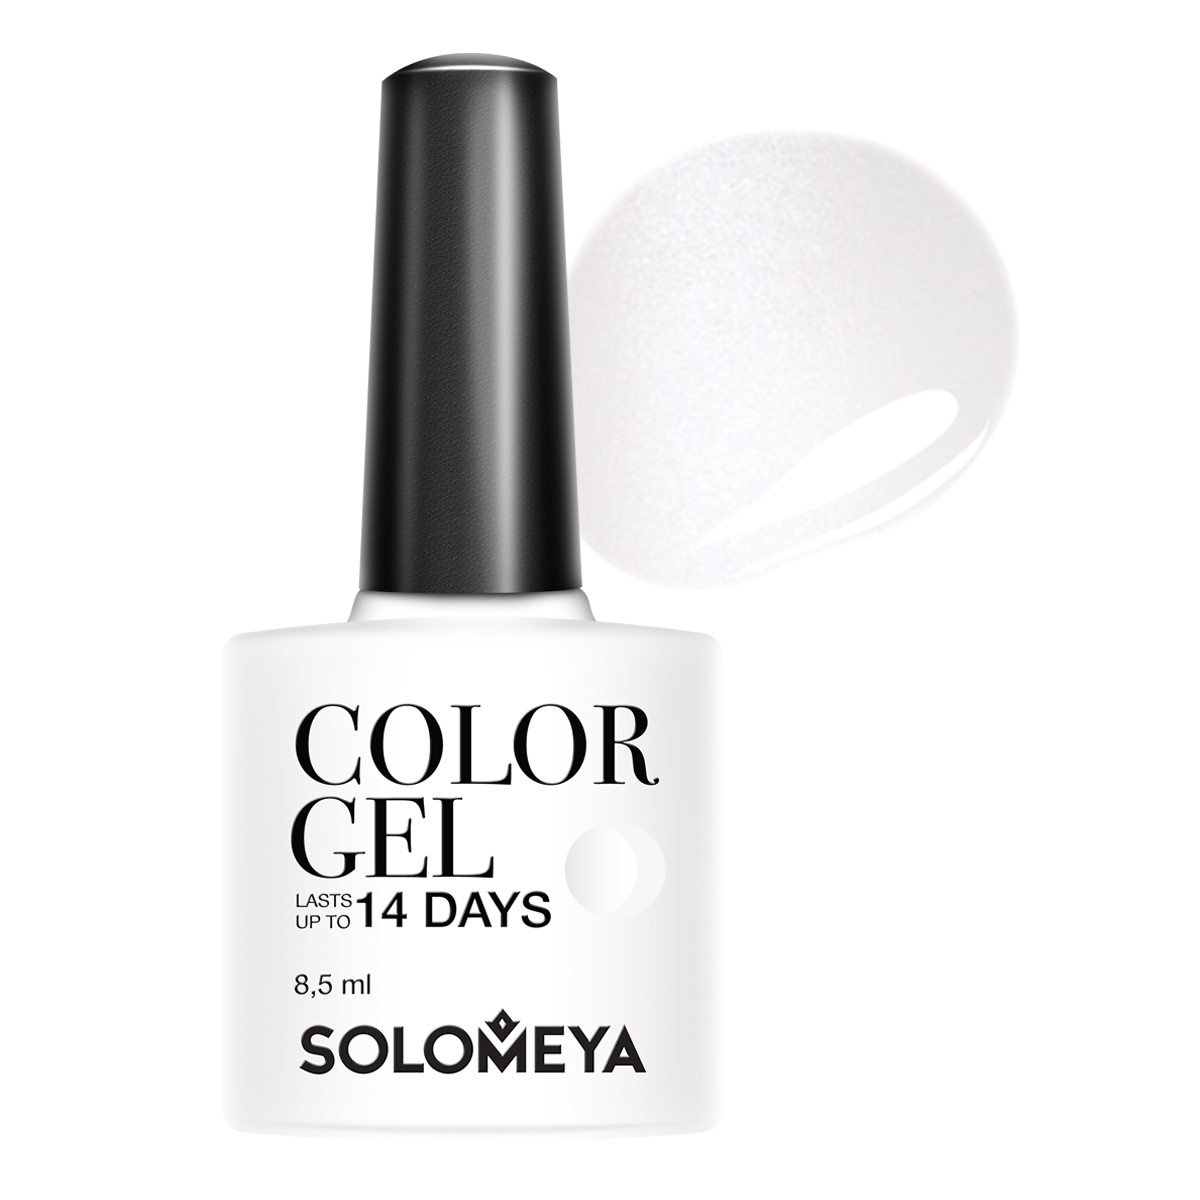 SOLOMEYA Гель-лак Solomeya Color Gel Marie SCGW001/Мэри 8,5 мл